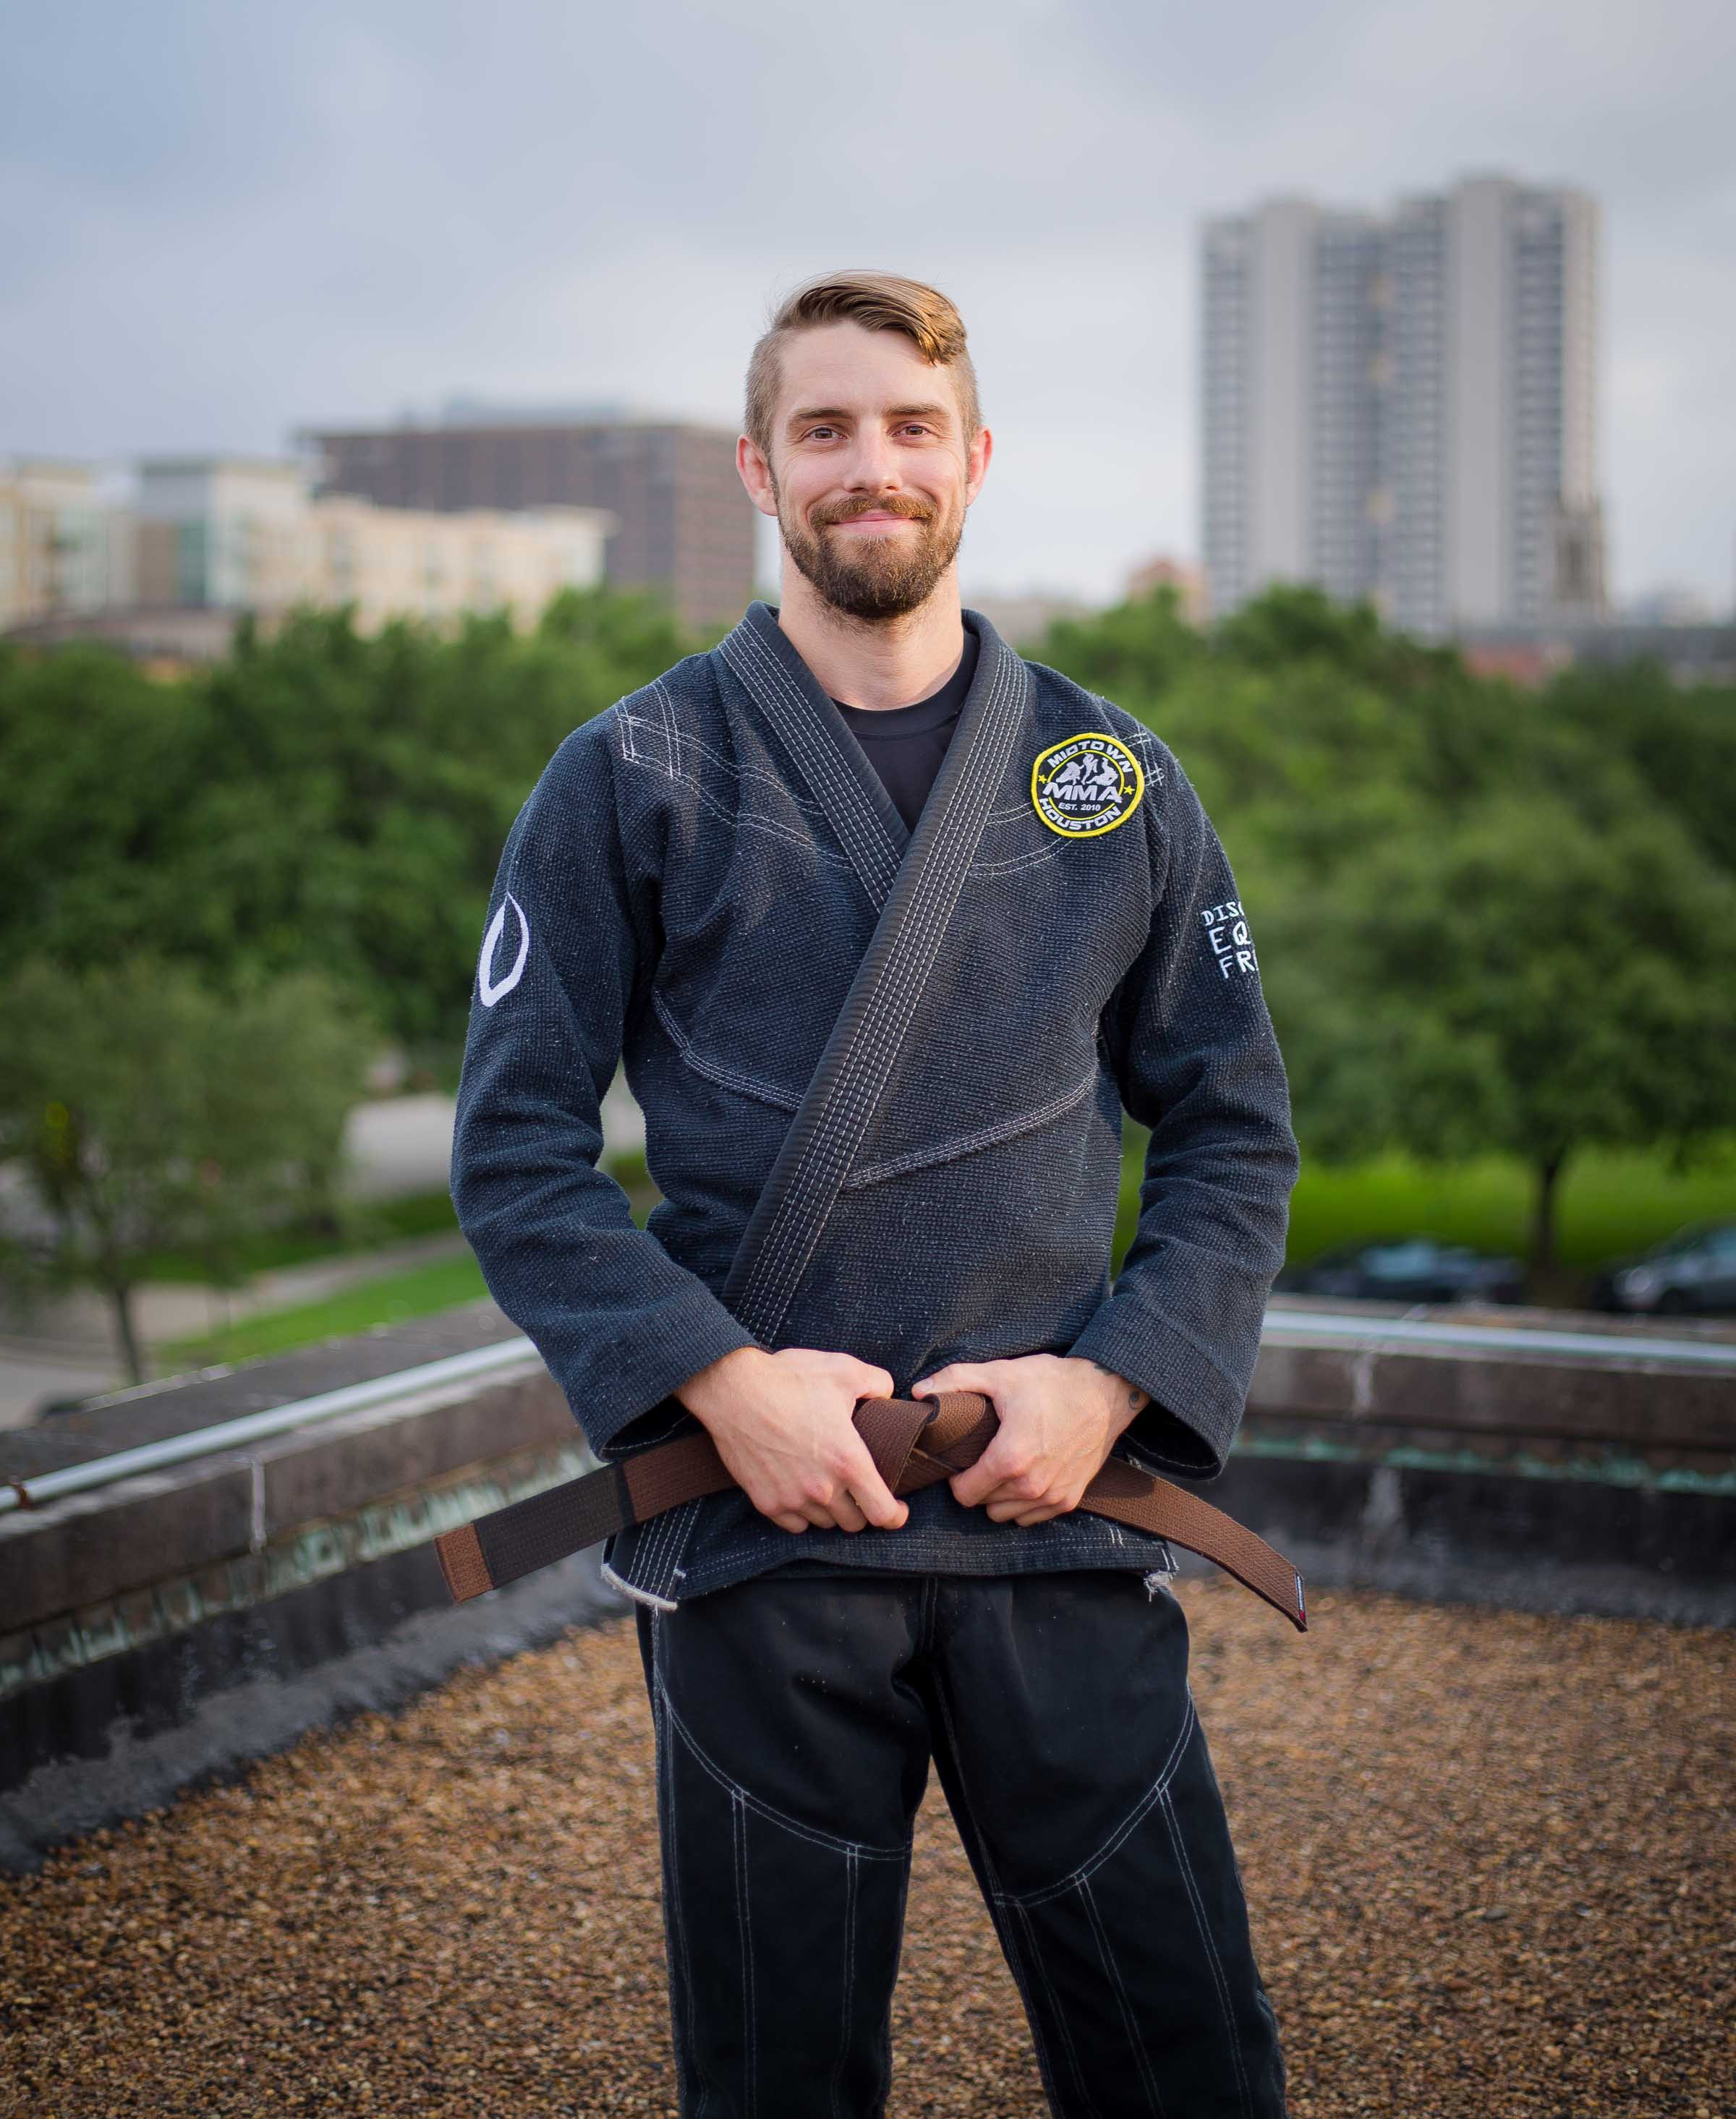 Coach Zach Lussier Brazilian Jiu-Jitsu Brown Belt